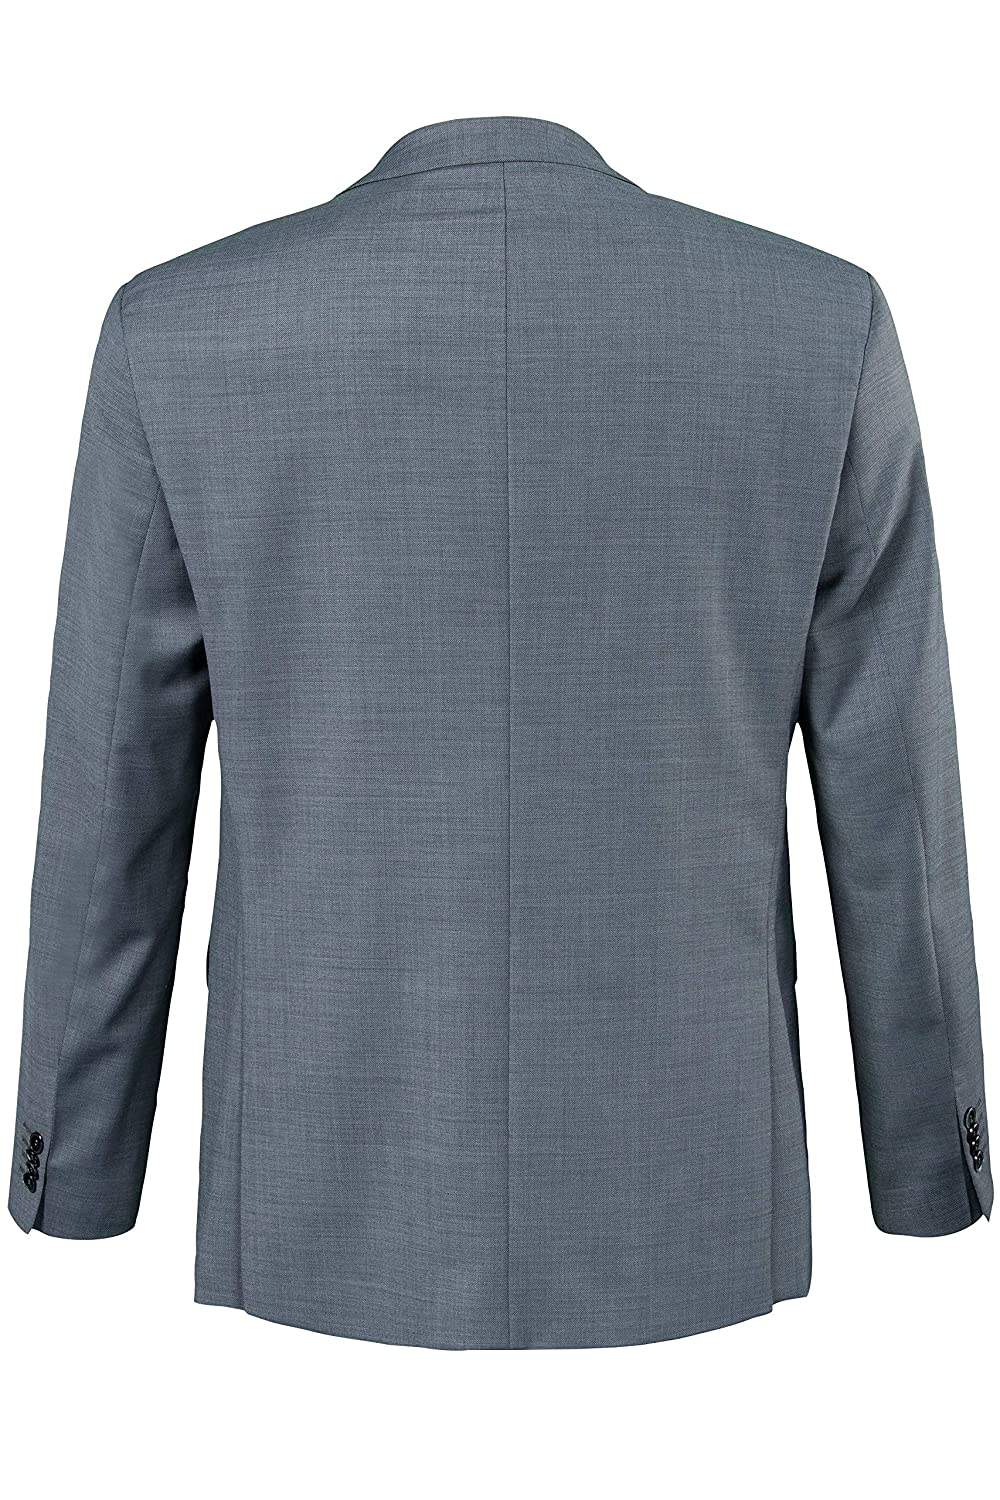 JP 1880 Mens Big /& Tall Smart Textured Suit Jacket 702882